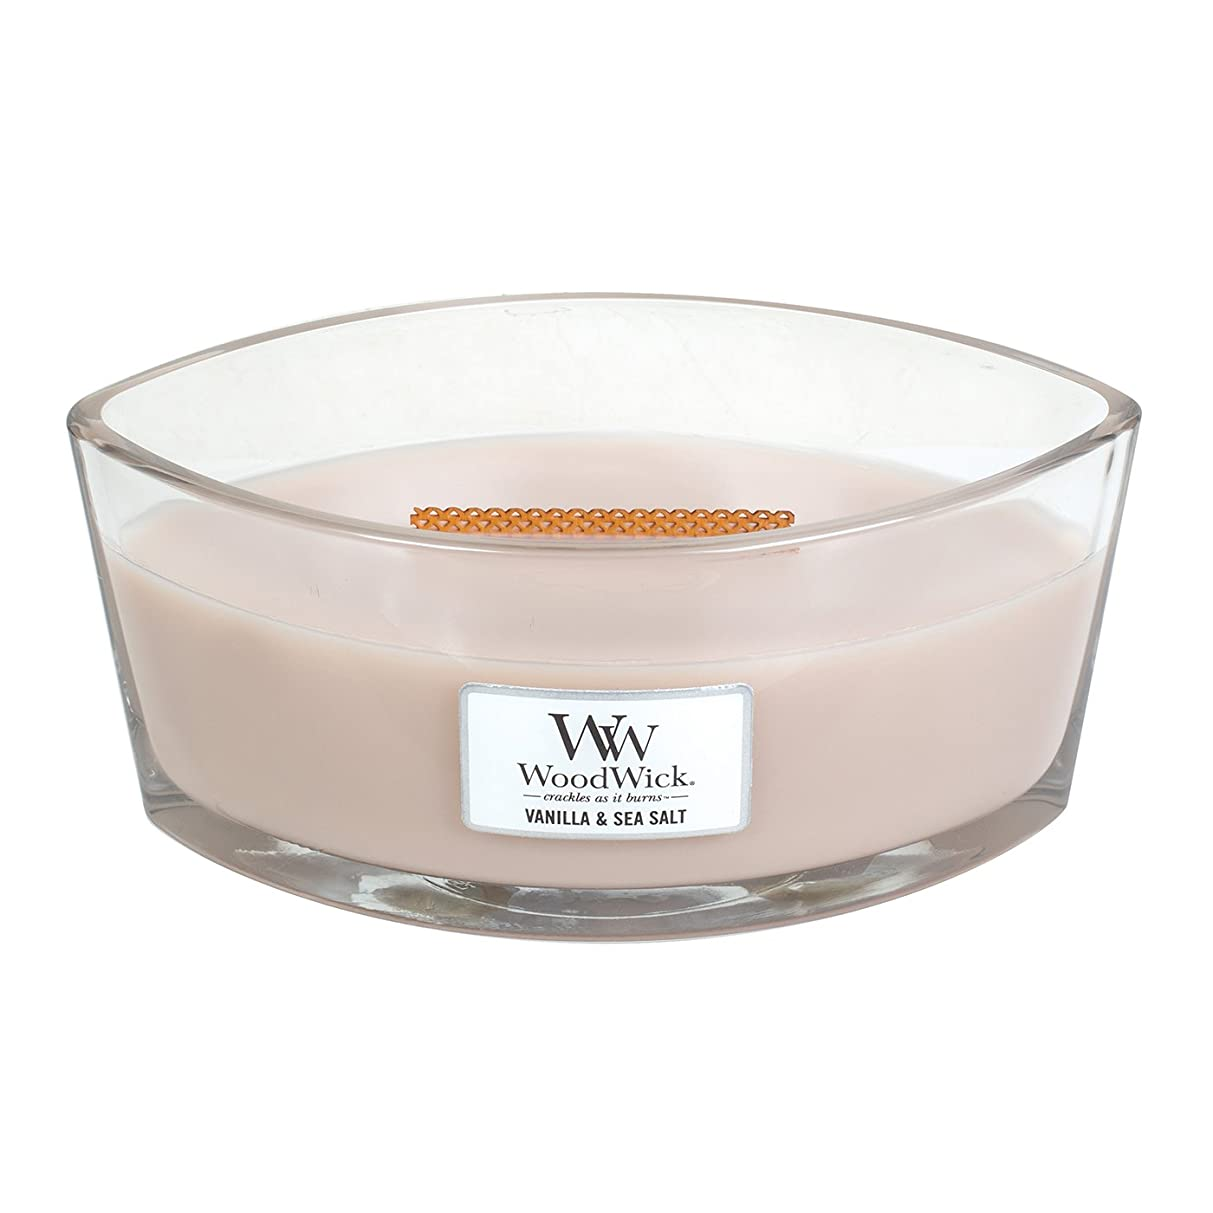 許される飼い慣らす大臣WoodWick VANILLA & SEA SALT, Highly Scented Candle, Ellipse Glass Jar with Original HearthWick Flame, Large 18cm, 470ml